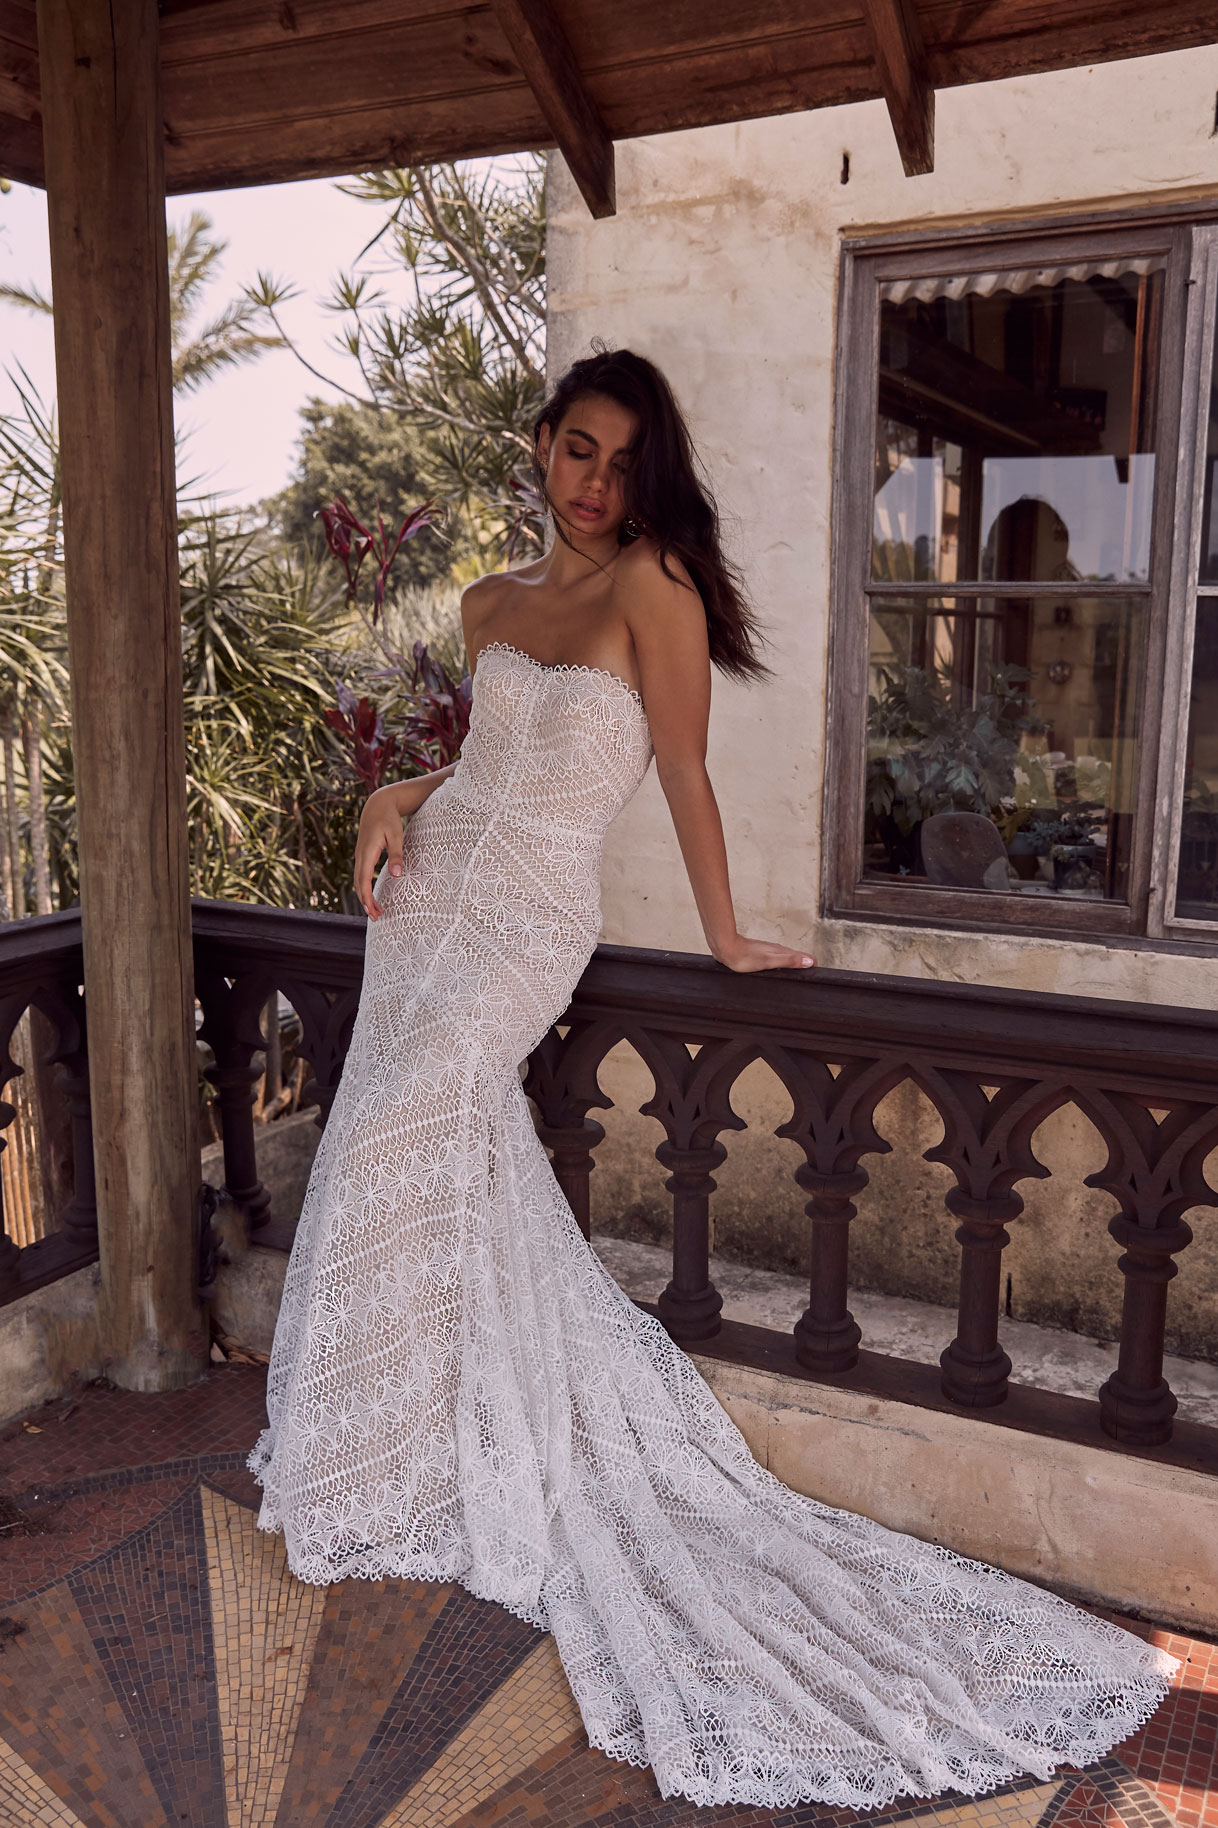 DYLAN-EY008-EVIE-YOUNG-BRIDAL1